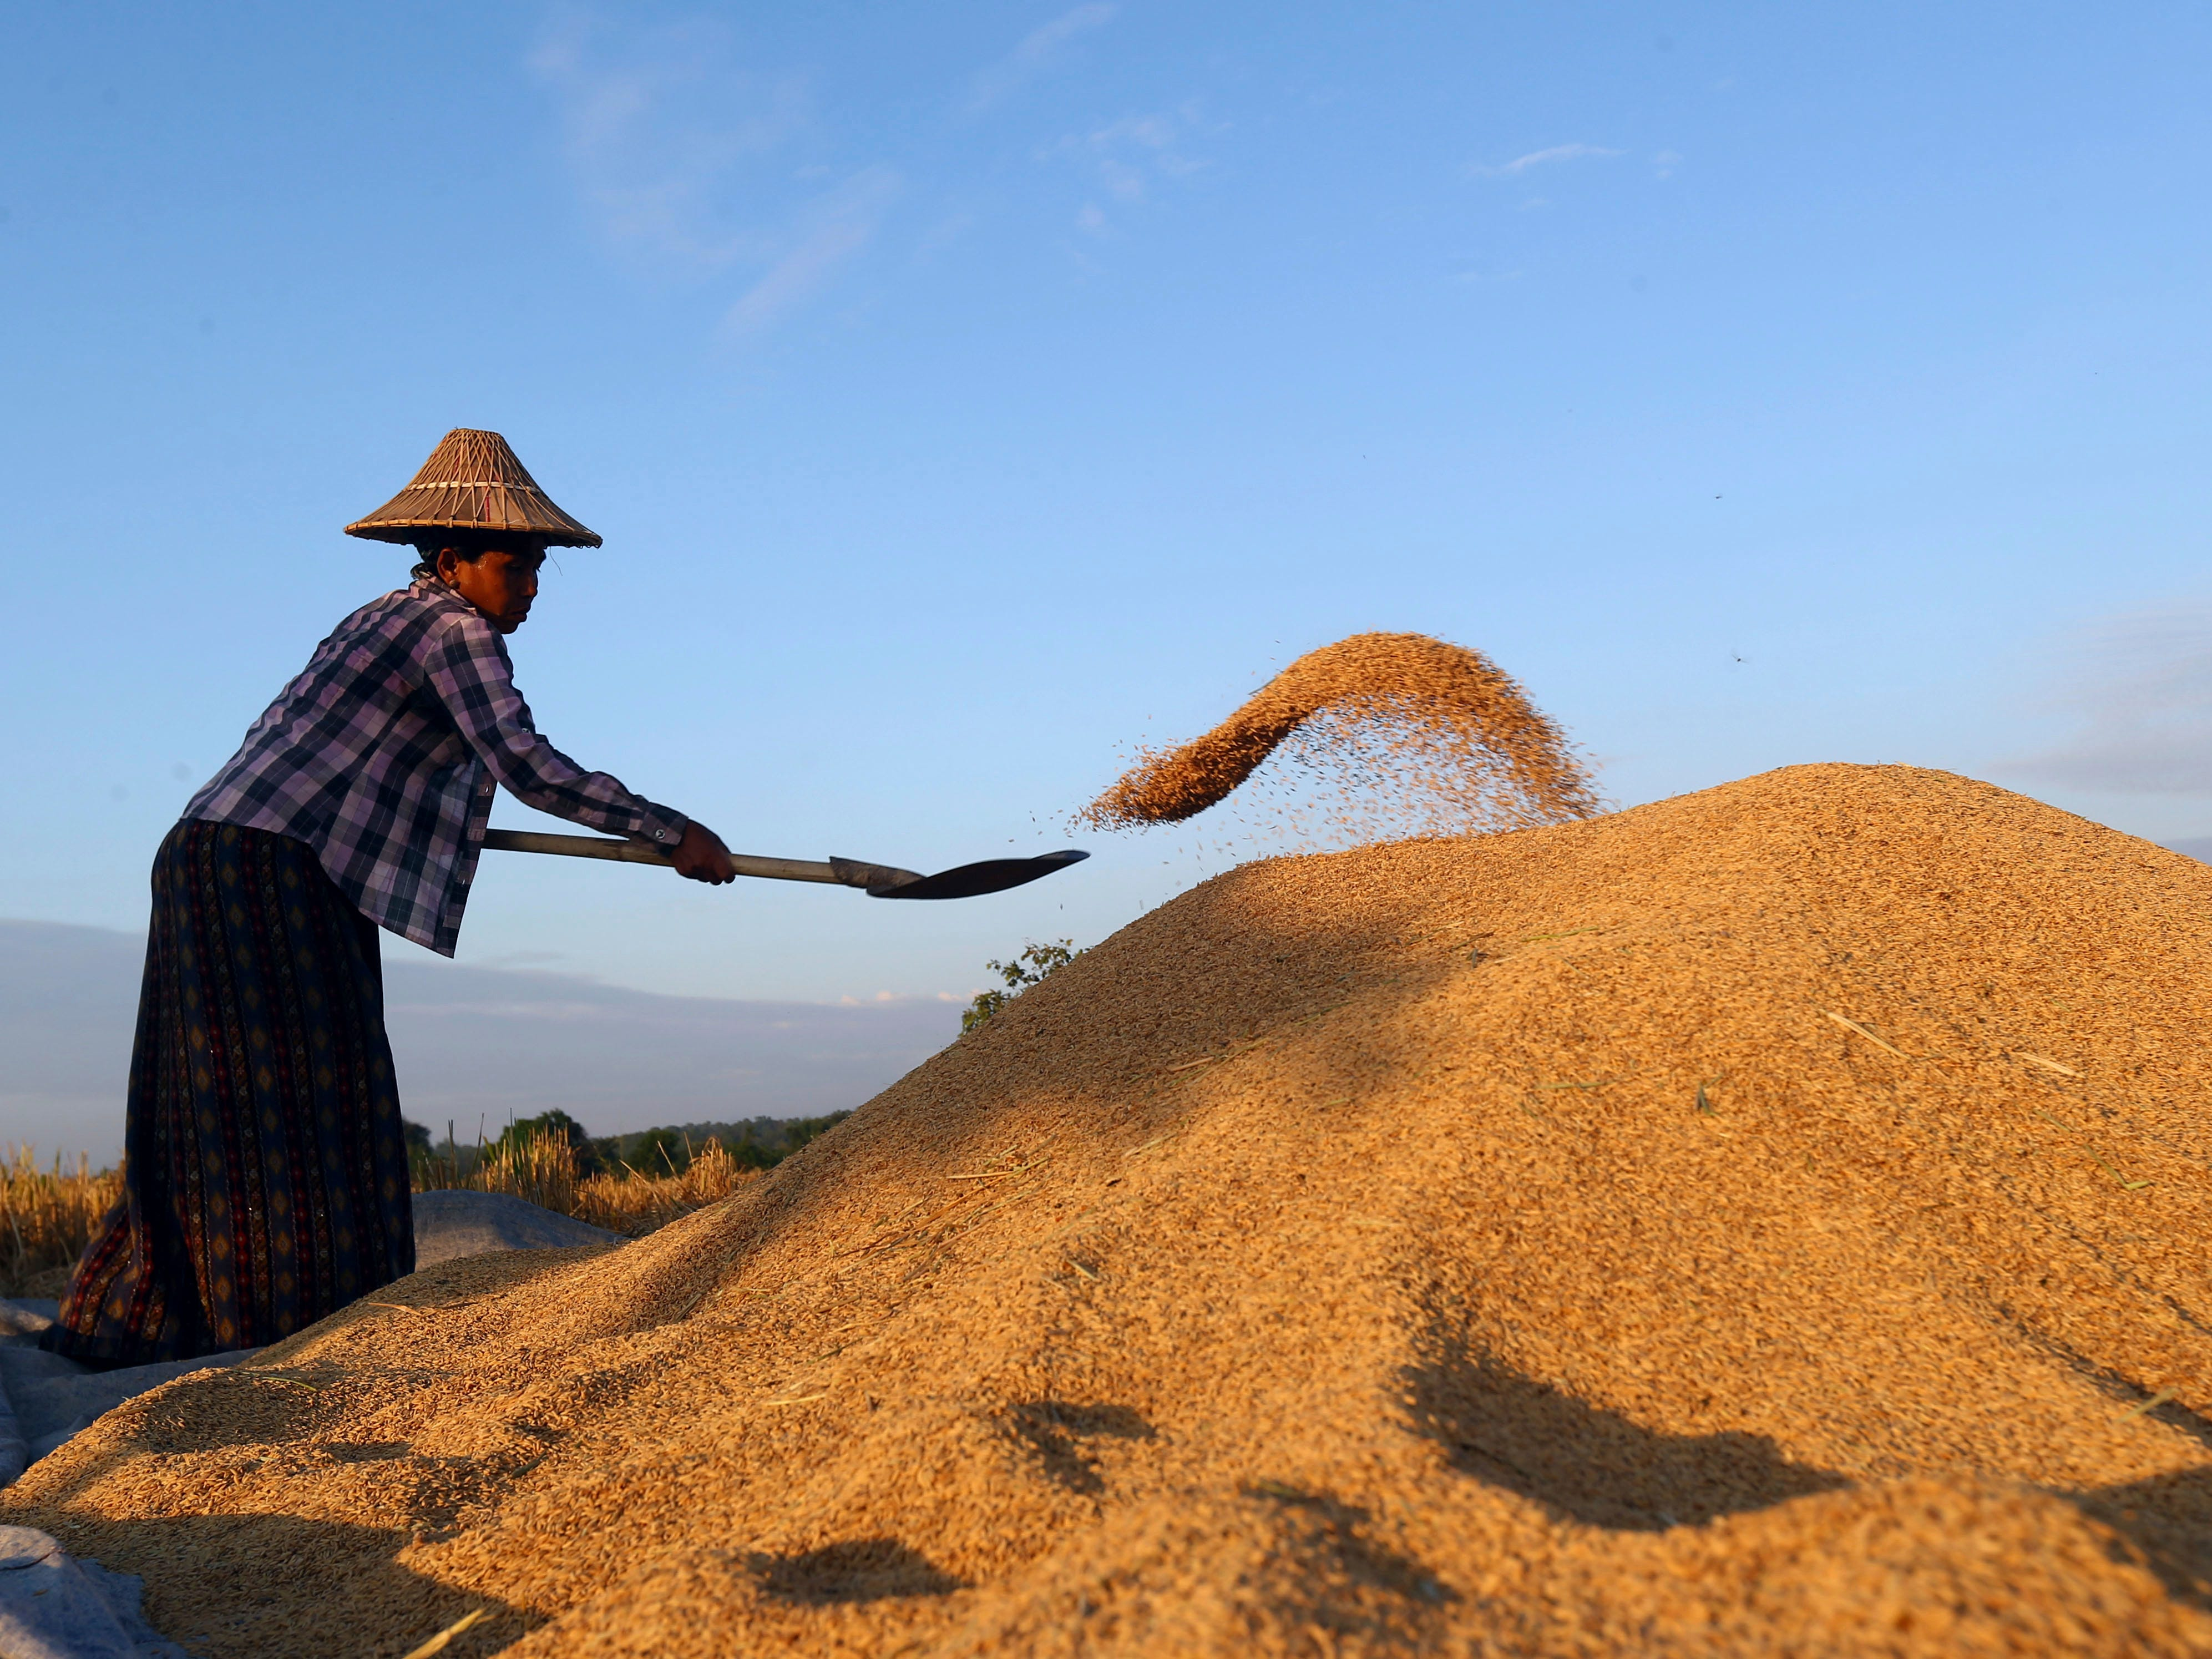 A Myanmar farmer collects paddy into a pile after drying it under the sun as she harvests rice in a rice field in Naypyitaw, Myanmar, Friday, Nov. 9, 2018.